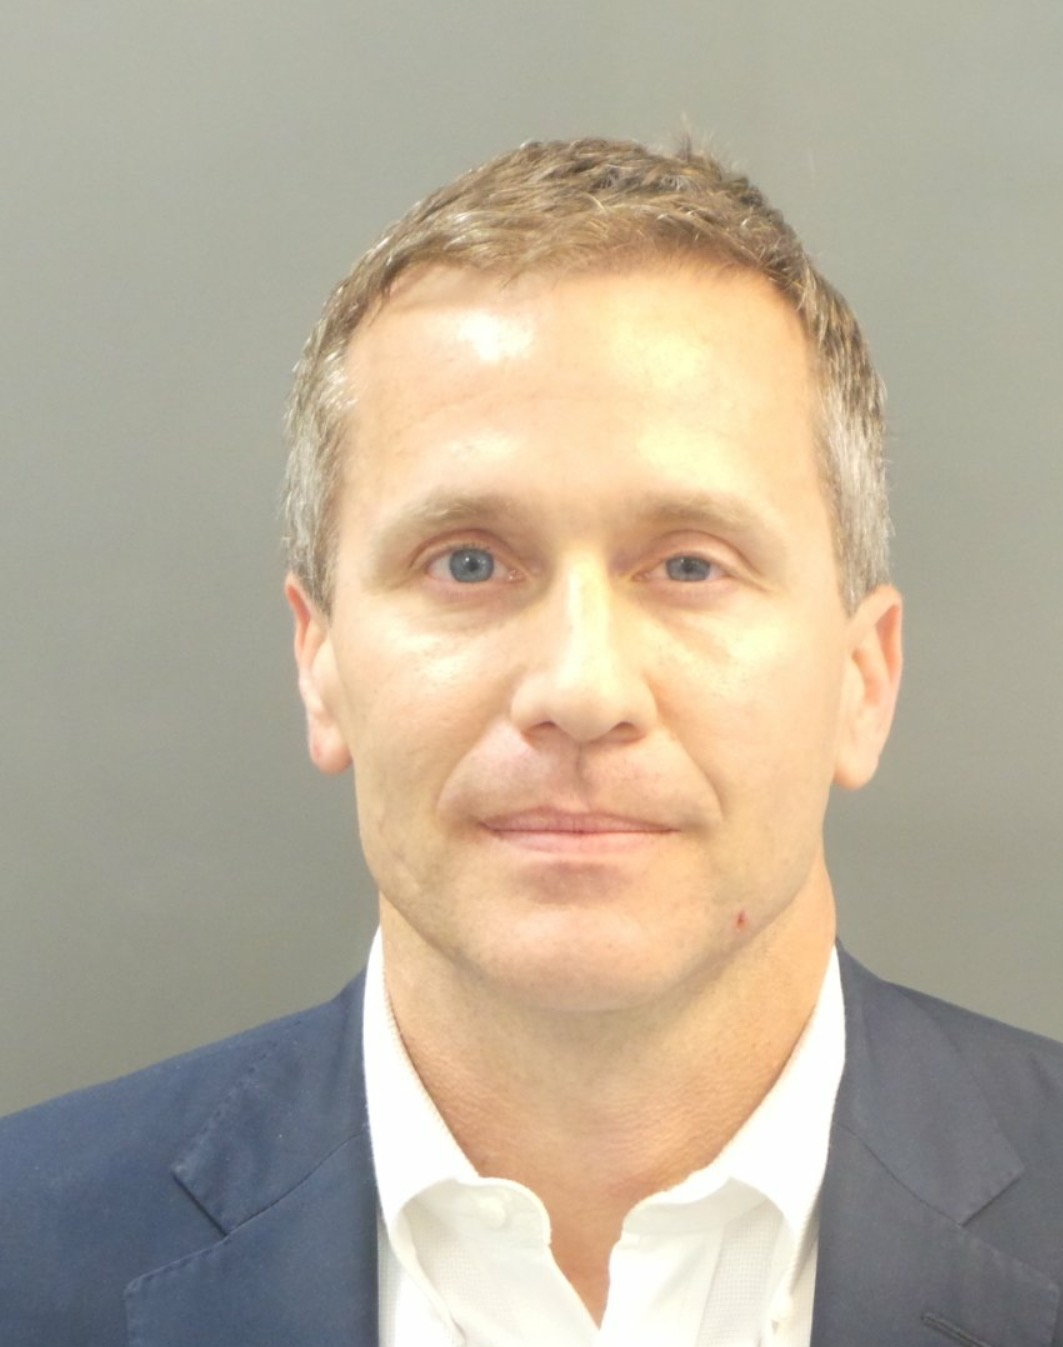 Key Takeaways From The Greitens Report